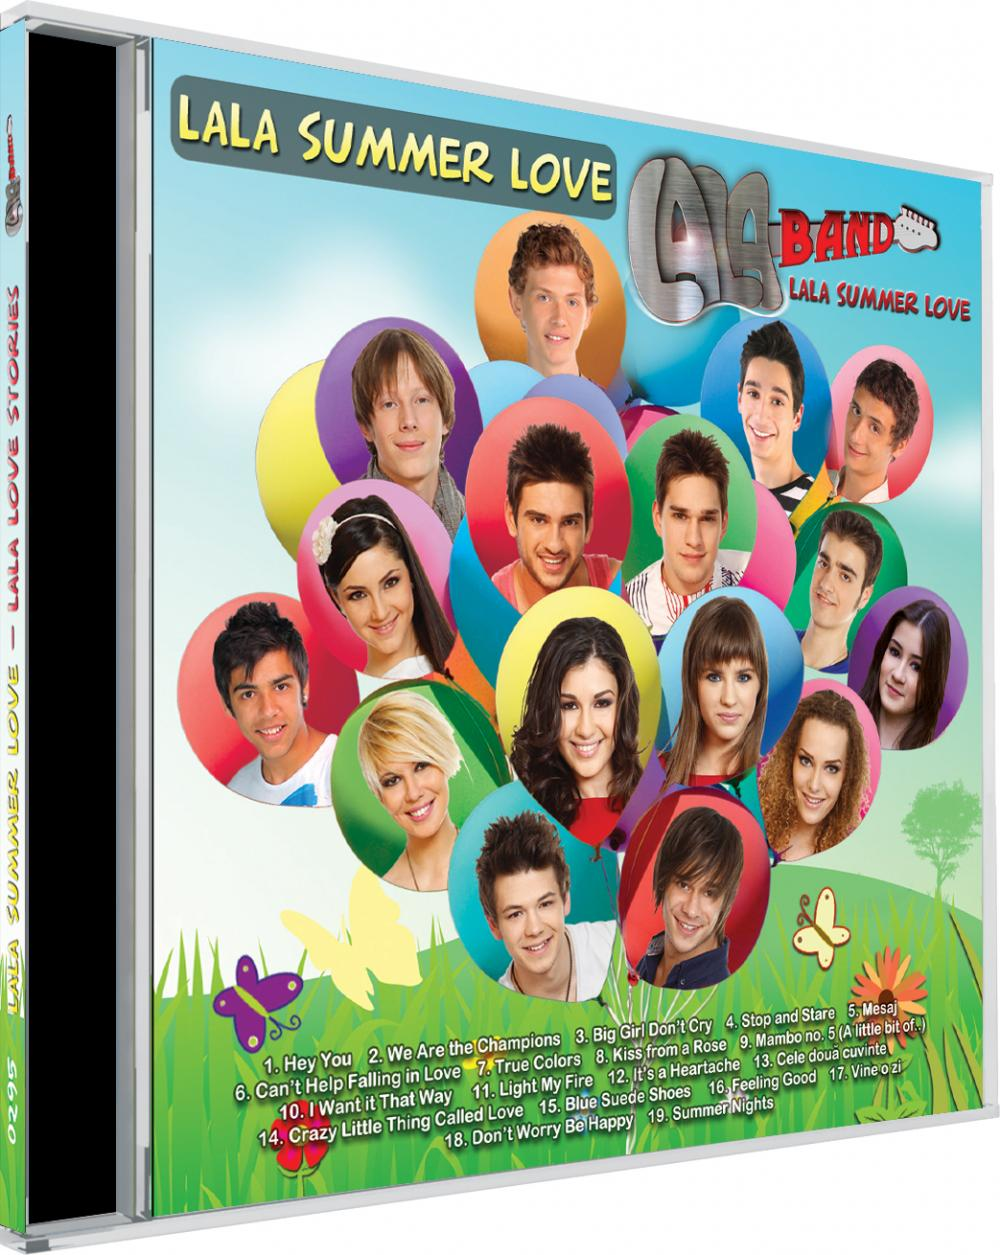 LALA SUMMER LOVE (2CD)